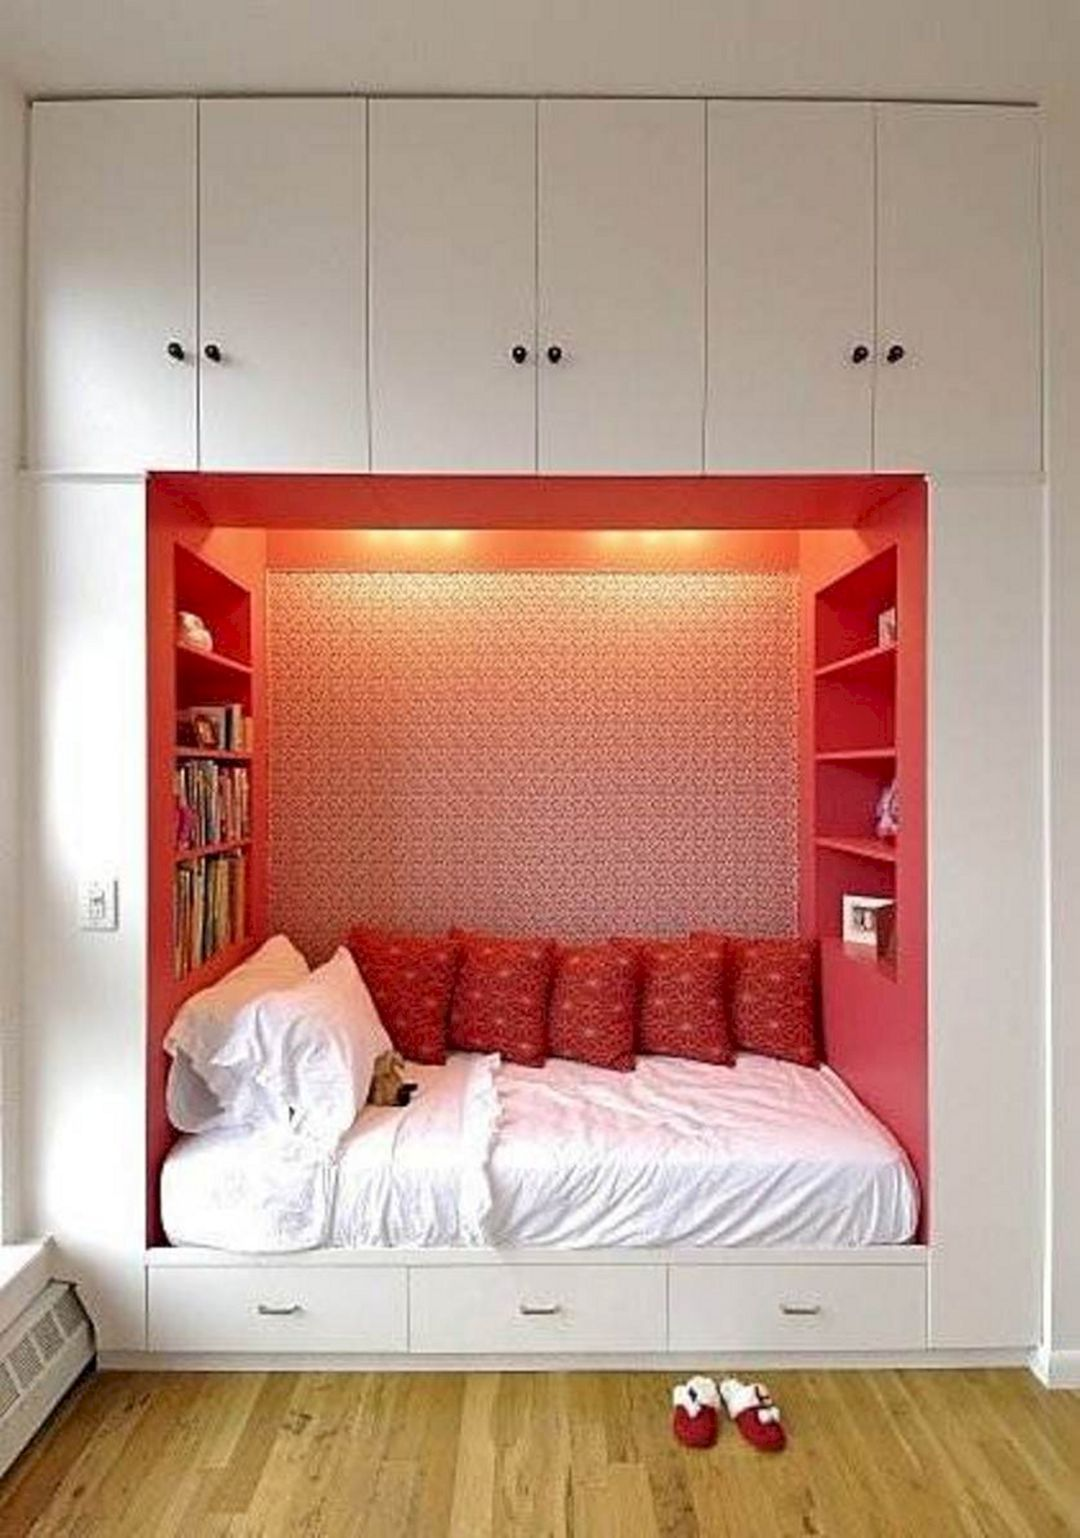 Kleiner Raum Schlafzimmer · Kleines Schlafzimmer · The Best Bedroom Storage  Ideas For Small Room Spaces No 58 U2013 DECOREDO